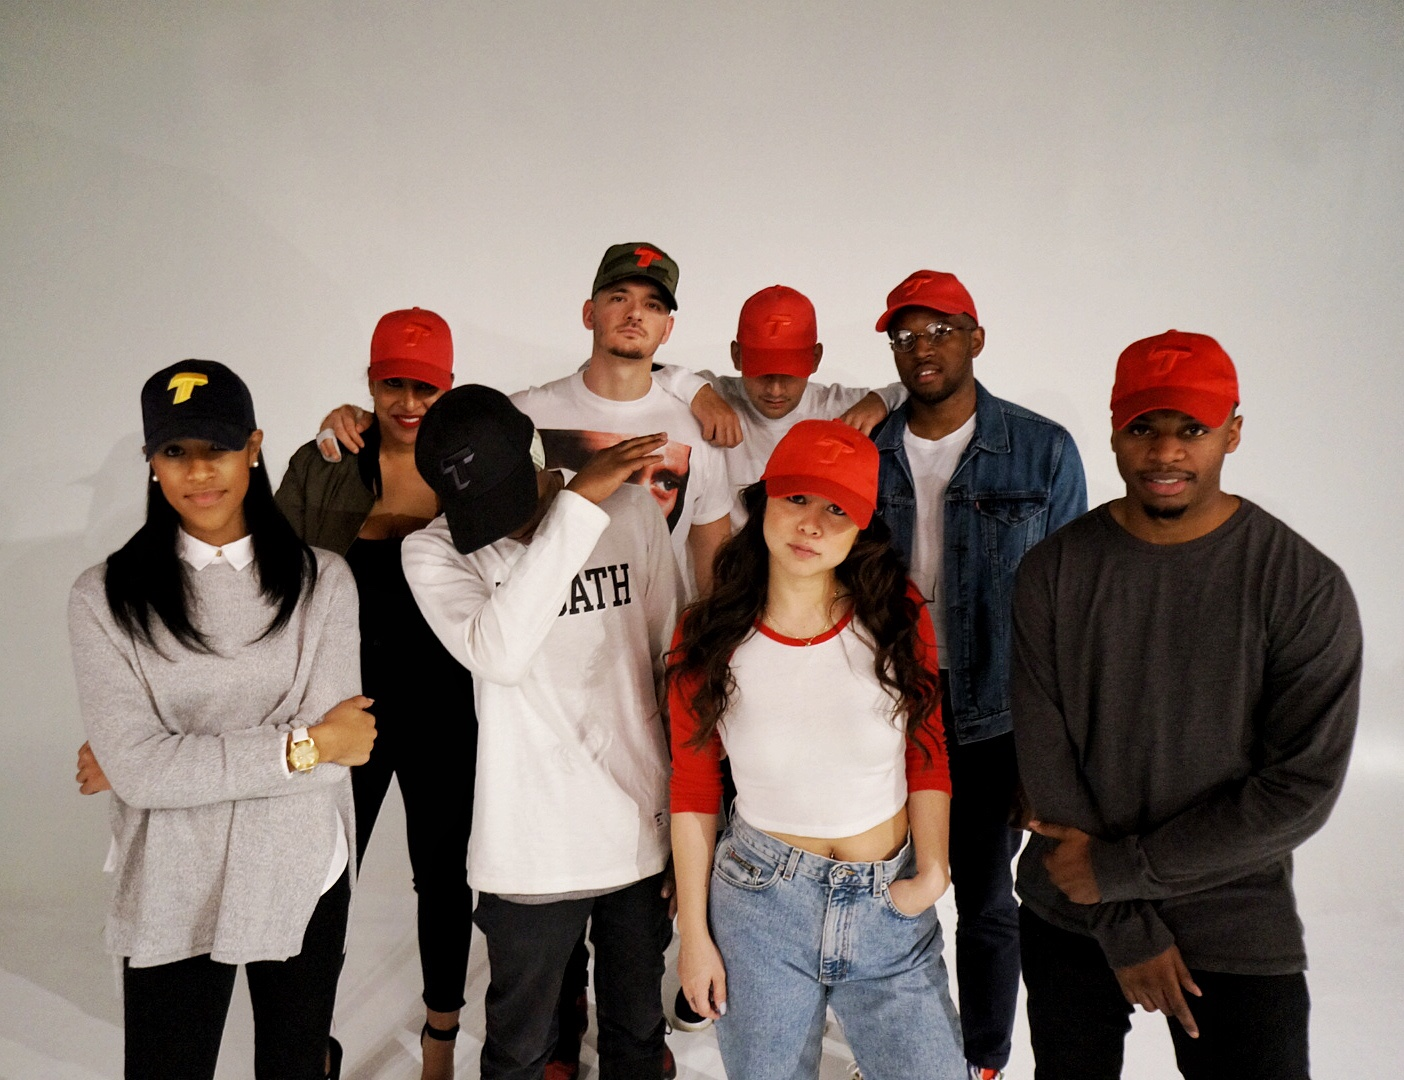 Photo taken from Tazz's T2 photoshoot. Dope hats!